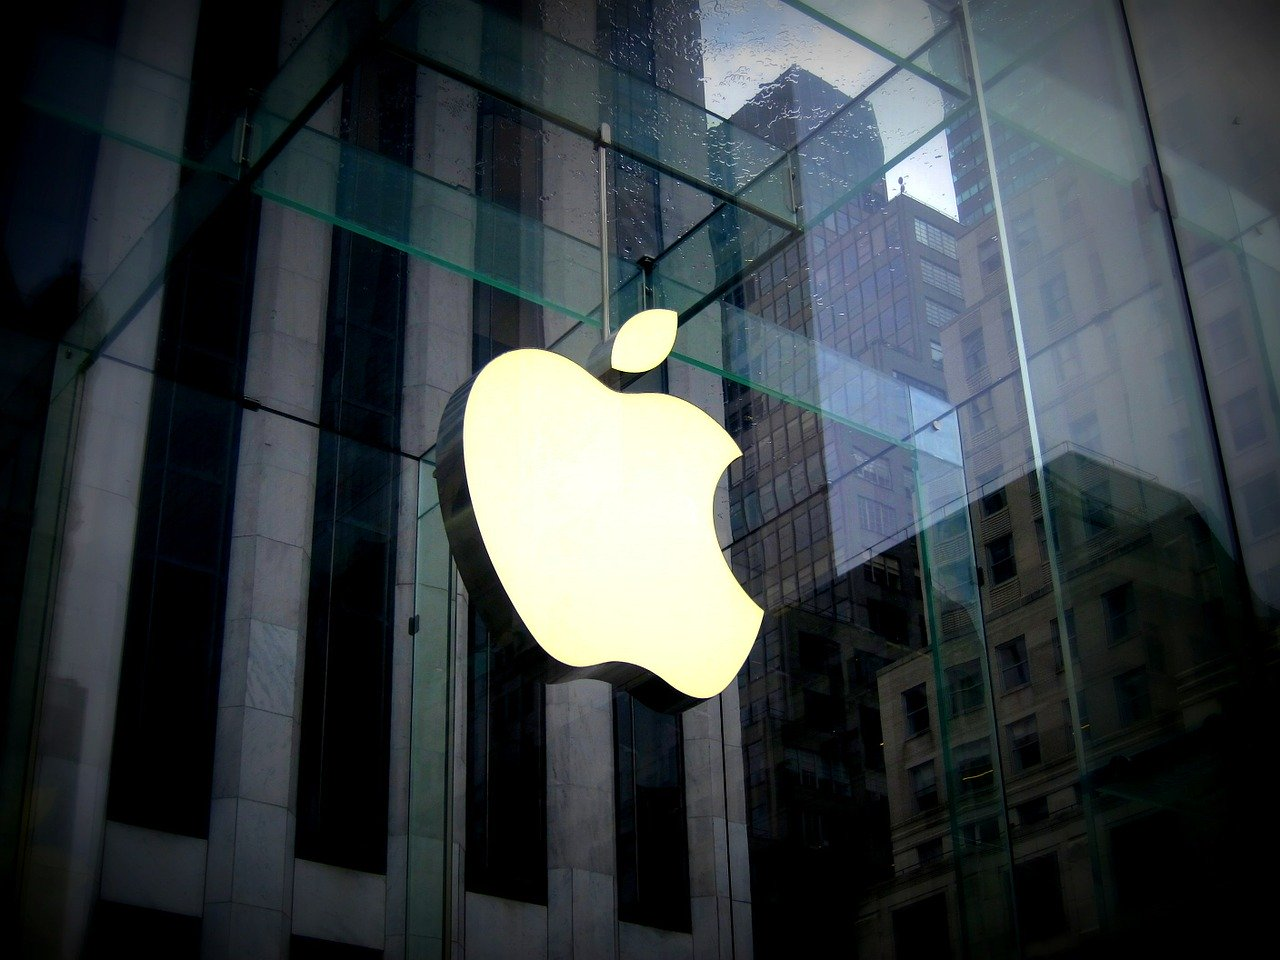 Apple enregistre plus de 90 milliards de dollars de ventes au dernier trimestre 2019